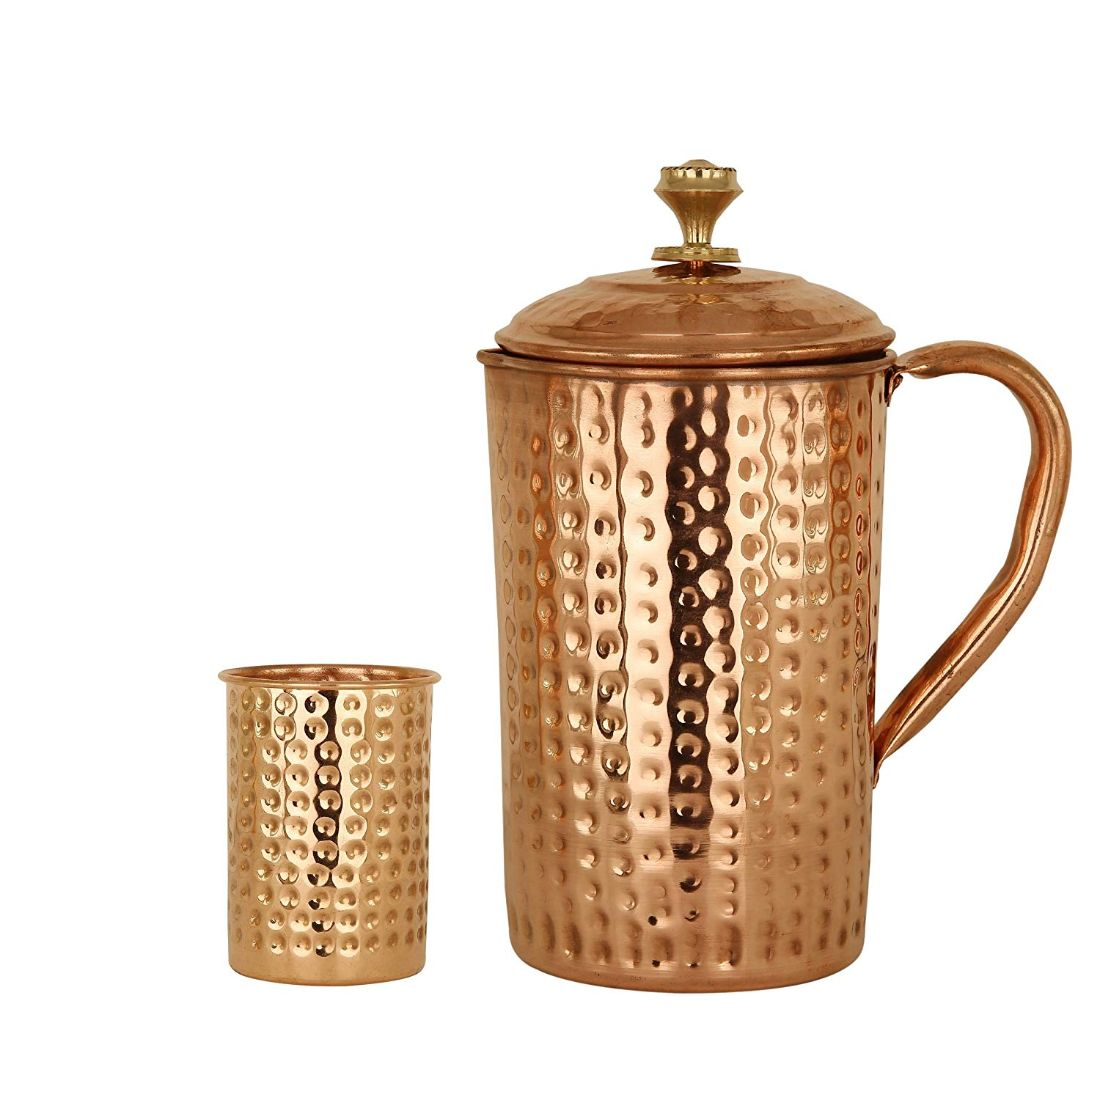 Copper Hammered Set of 1 Jug Pitcher 1700 ML with 1 Glass 300 ML - Storage Drinking Water Home Hotel Restaurant Tableware Drinkware